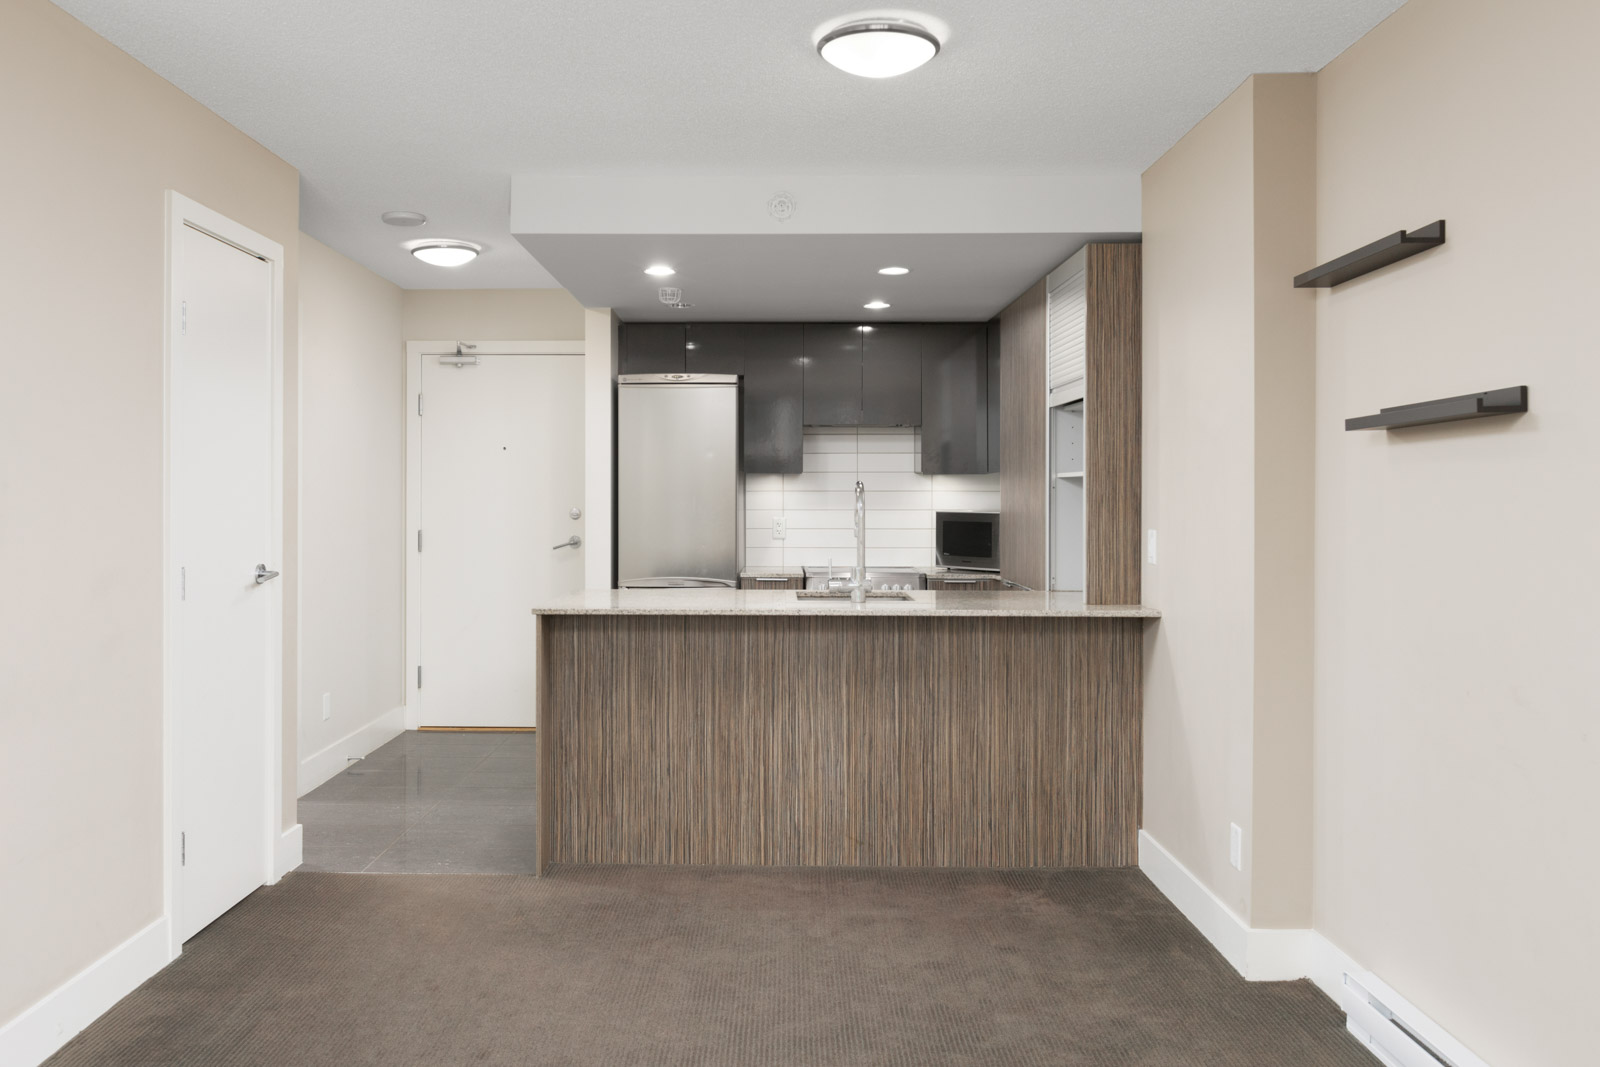 condo kitchen in yaletown vancouver with counter and hardwood floors